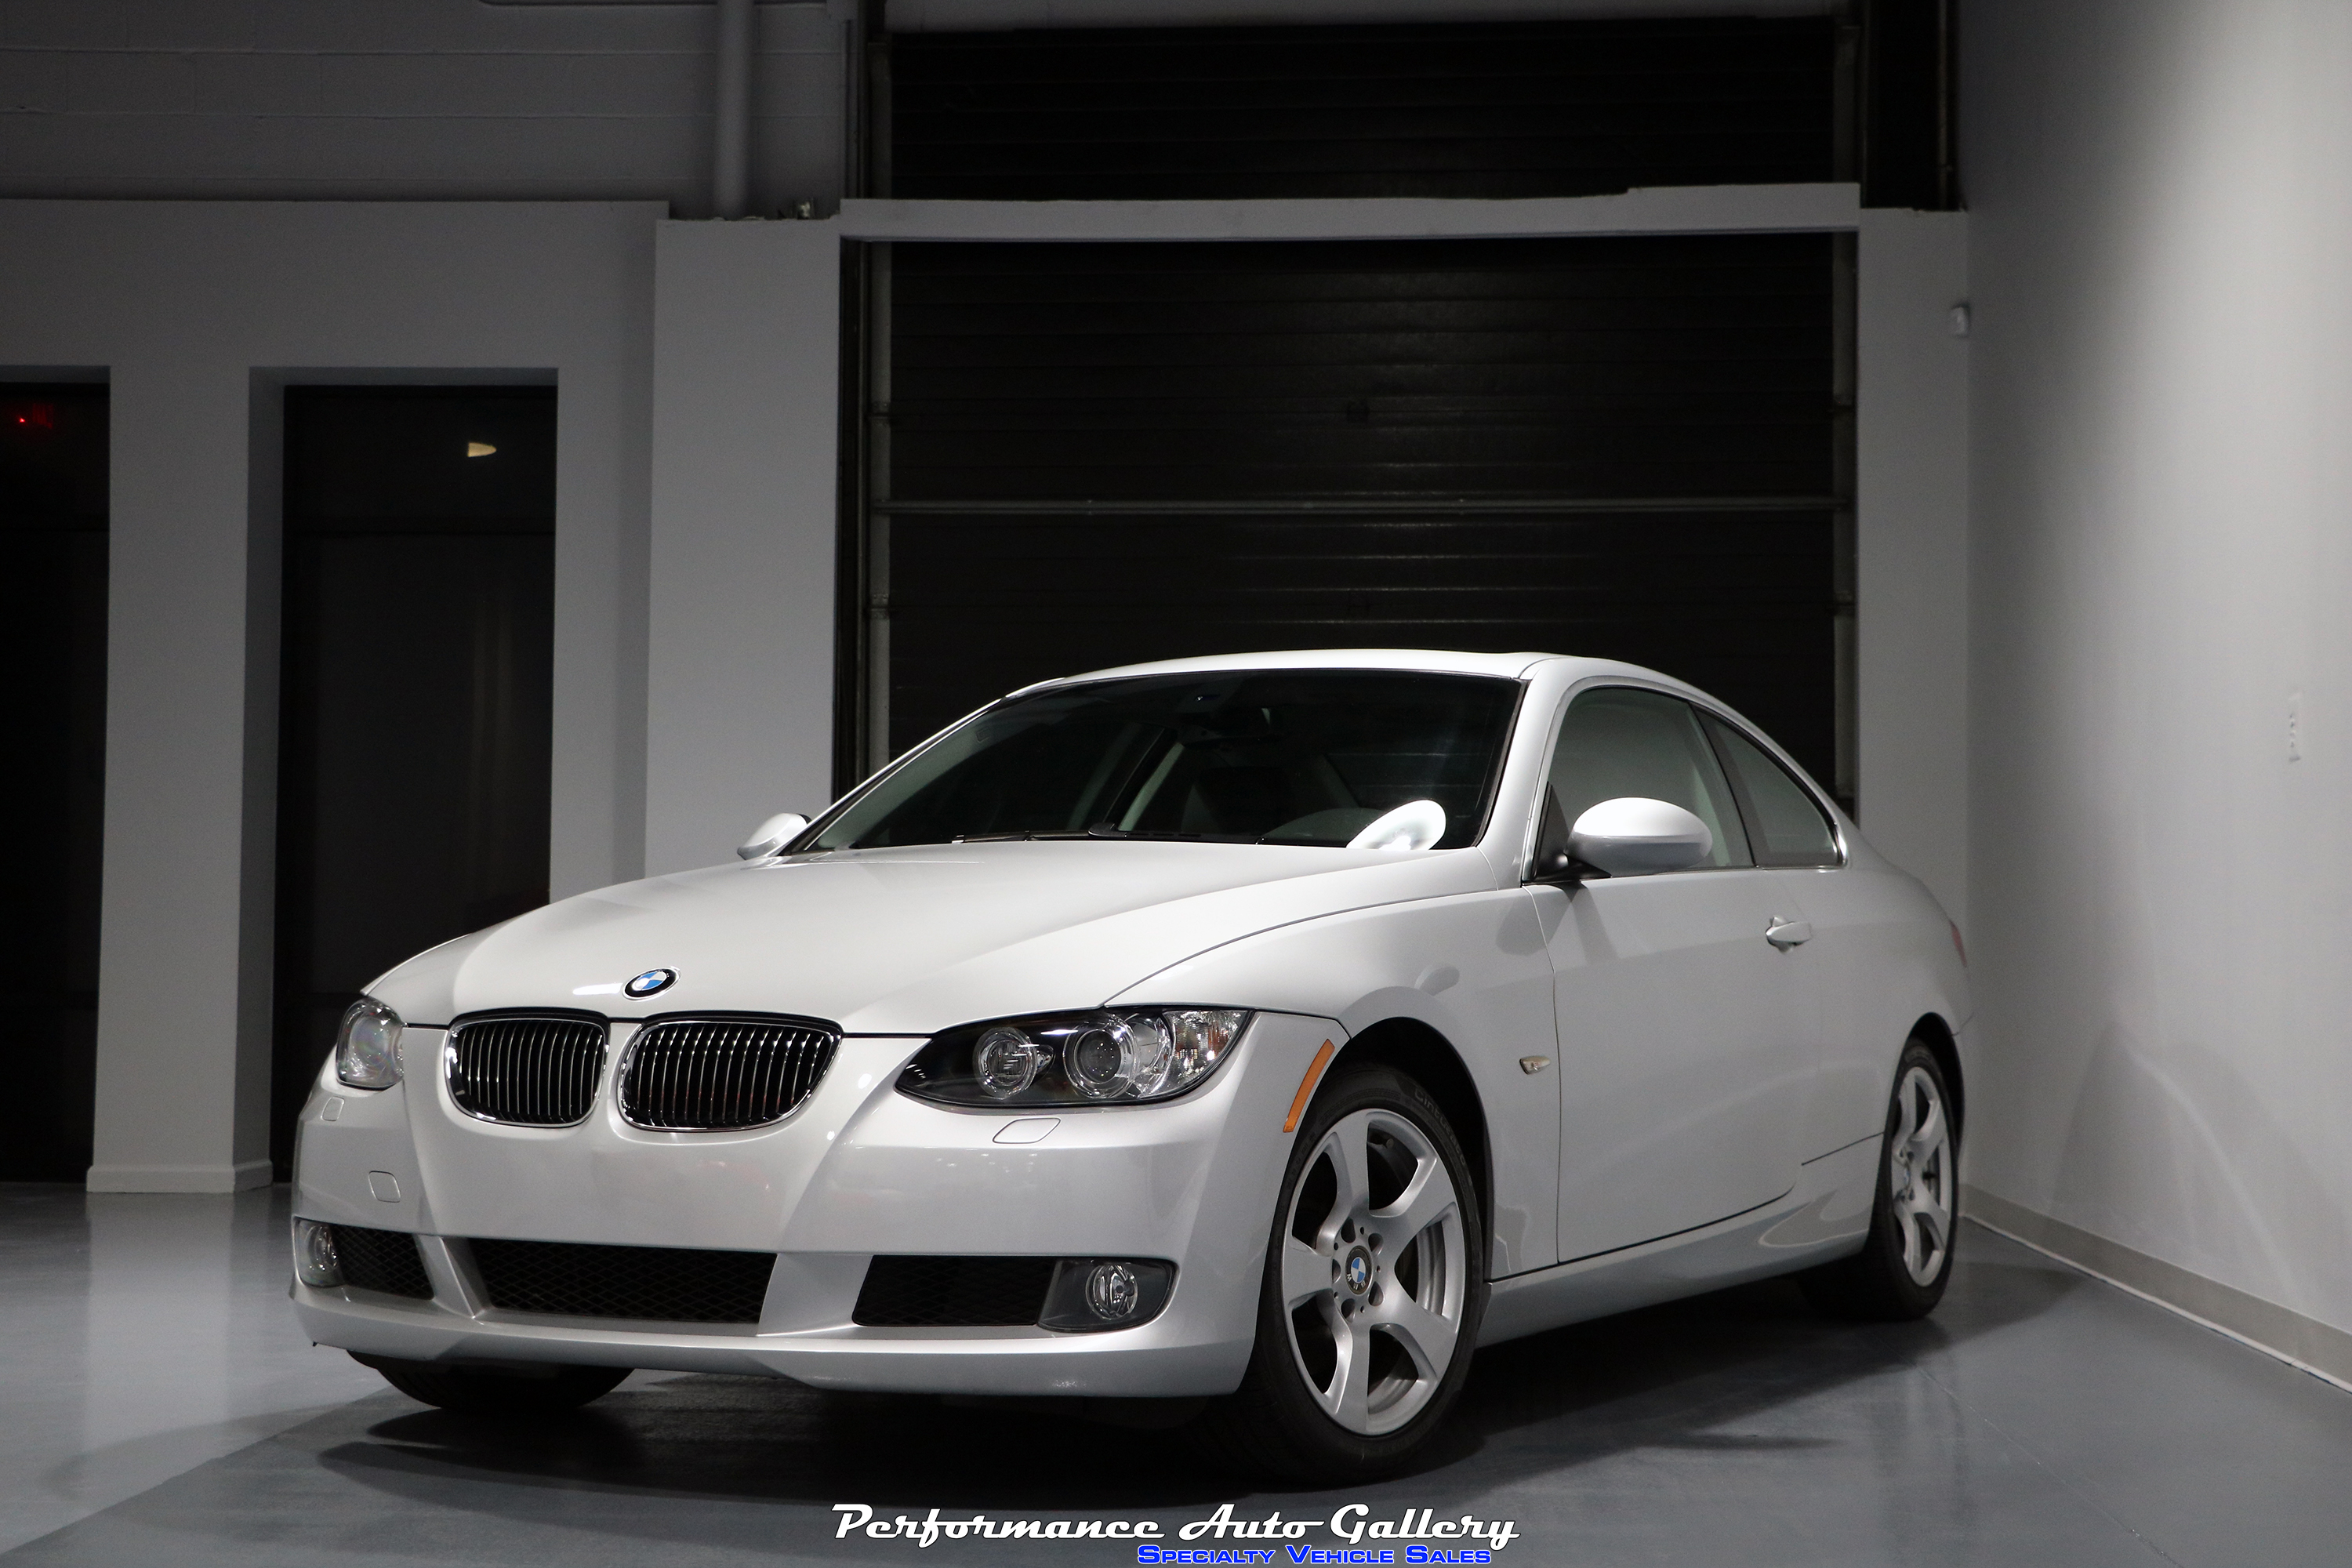 New Arrival BMW Xi Coupe - 2008 bmw 328xi coupe